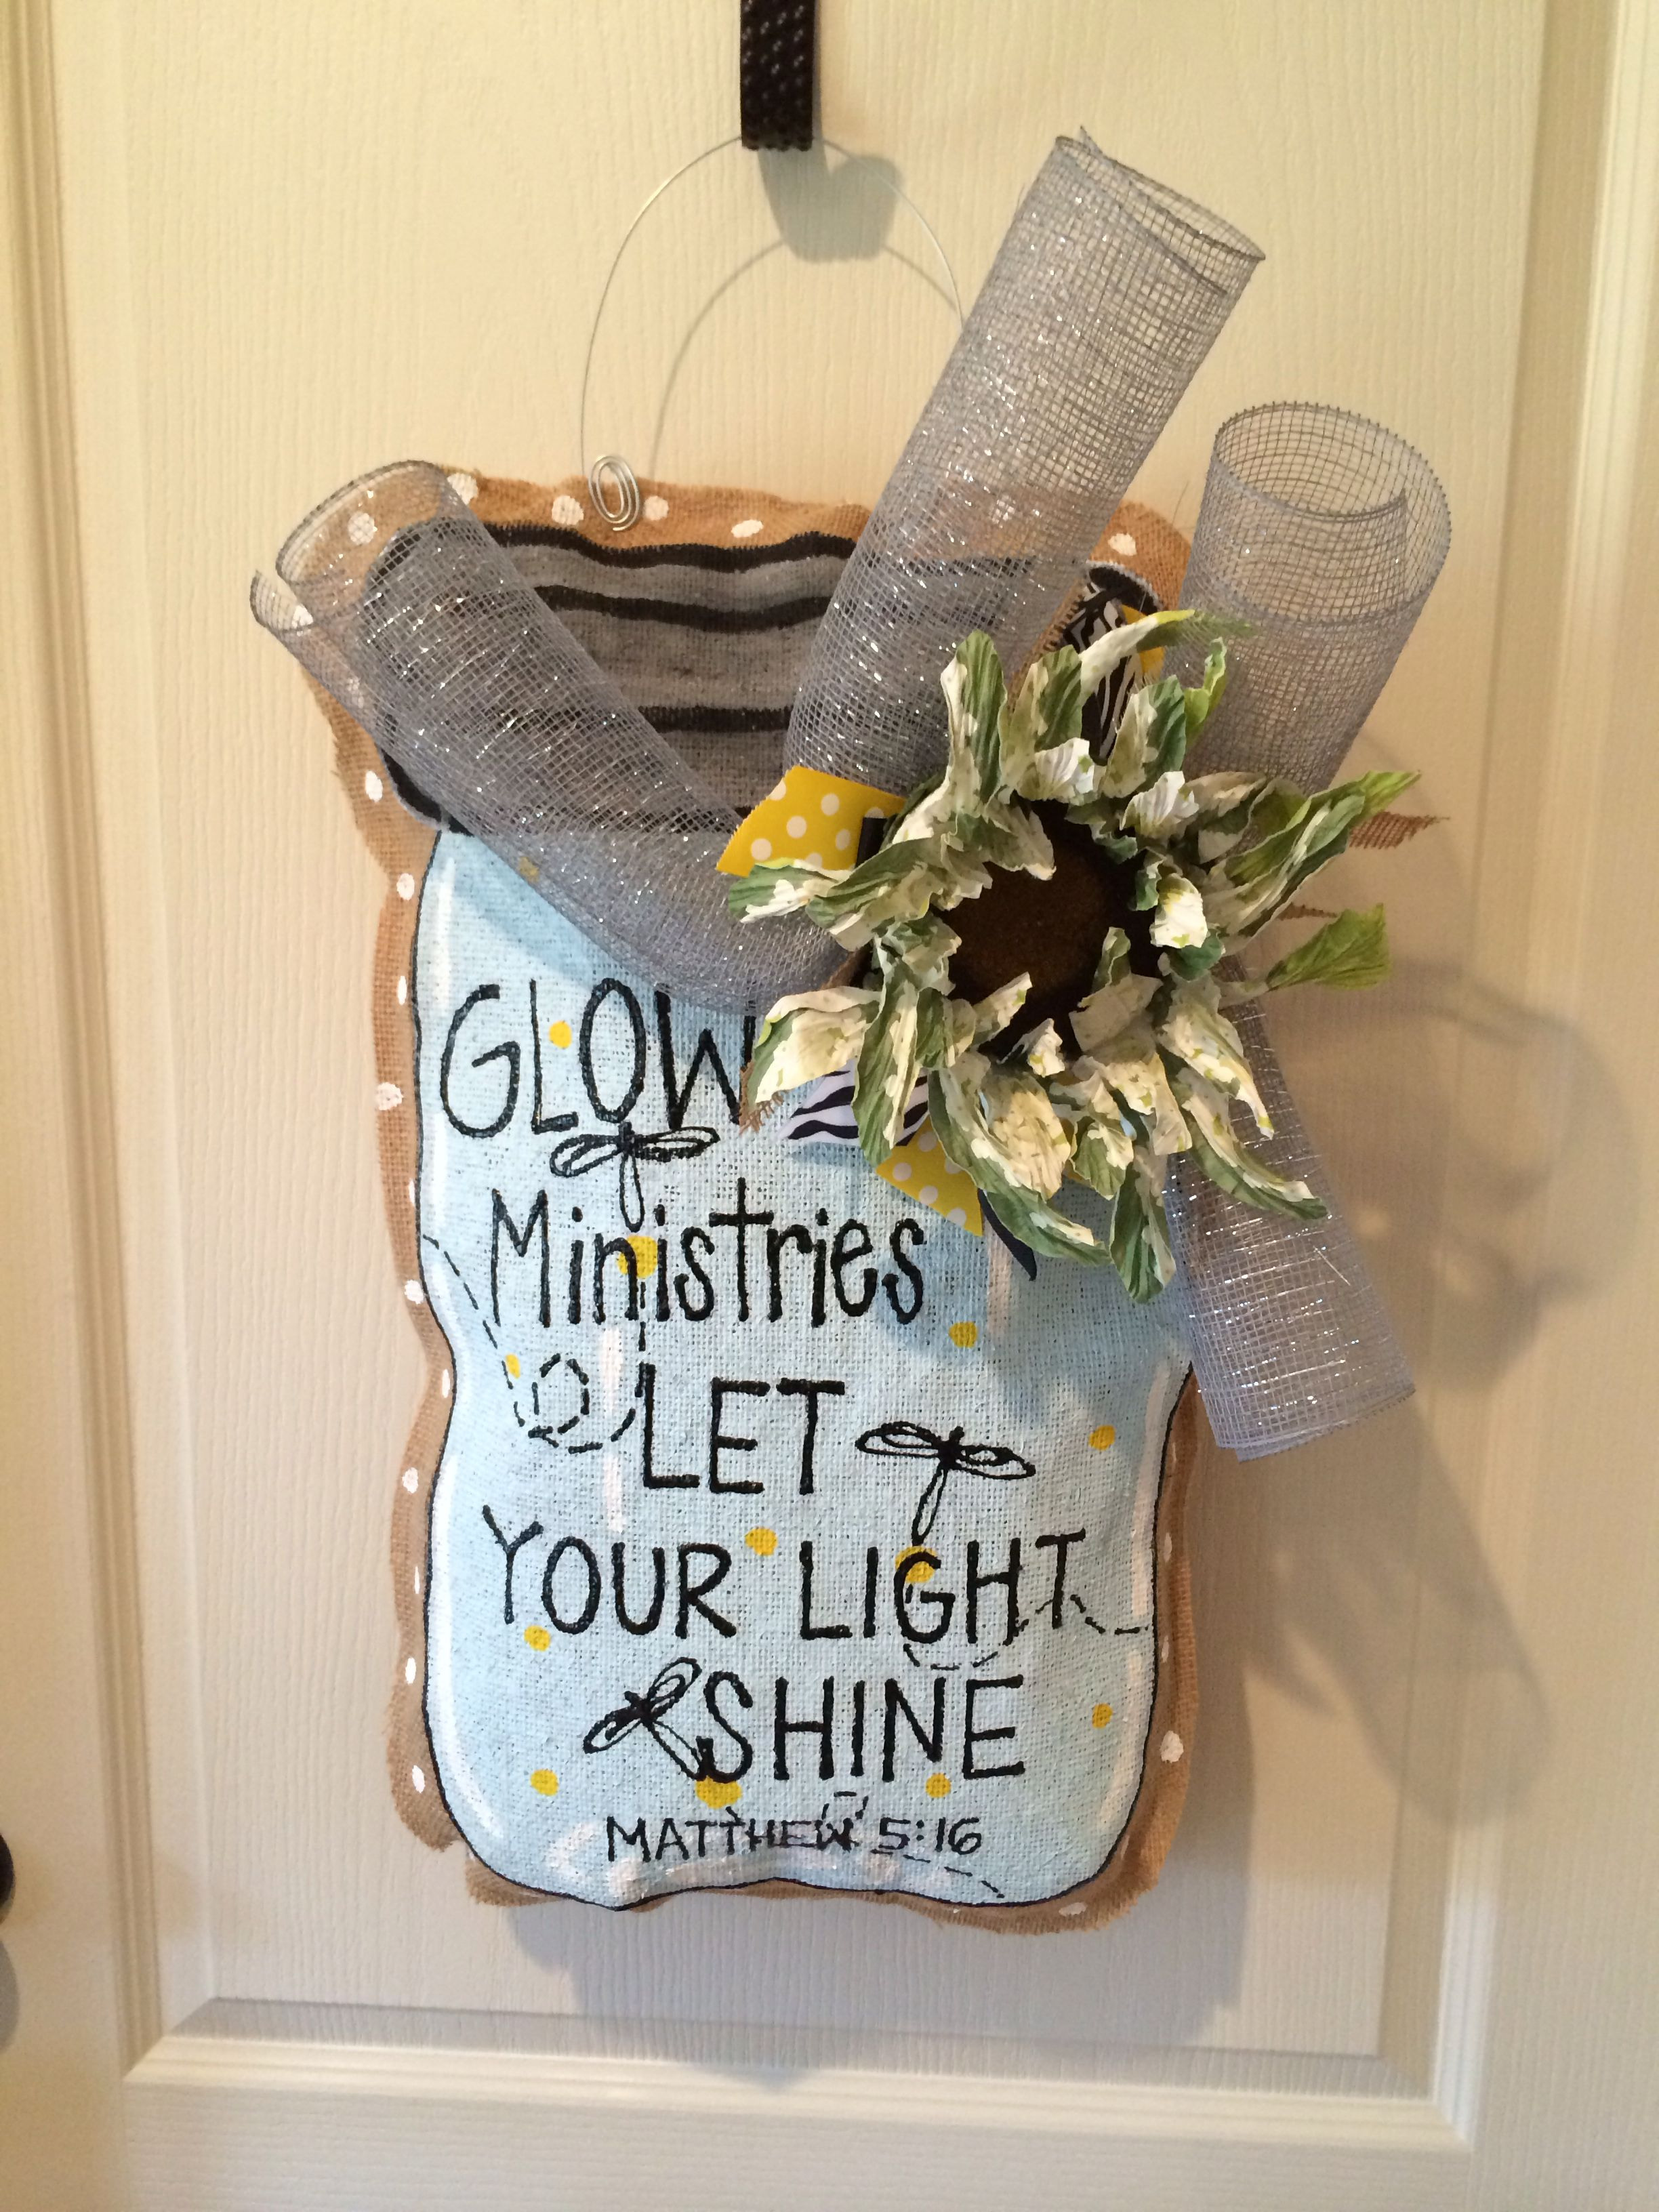 Let your light shine mason jar burlee hanger